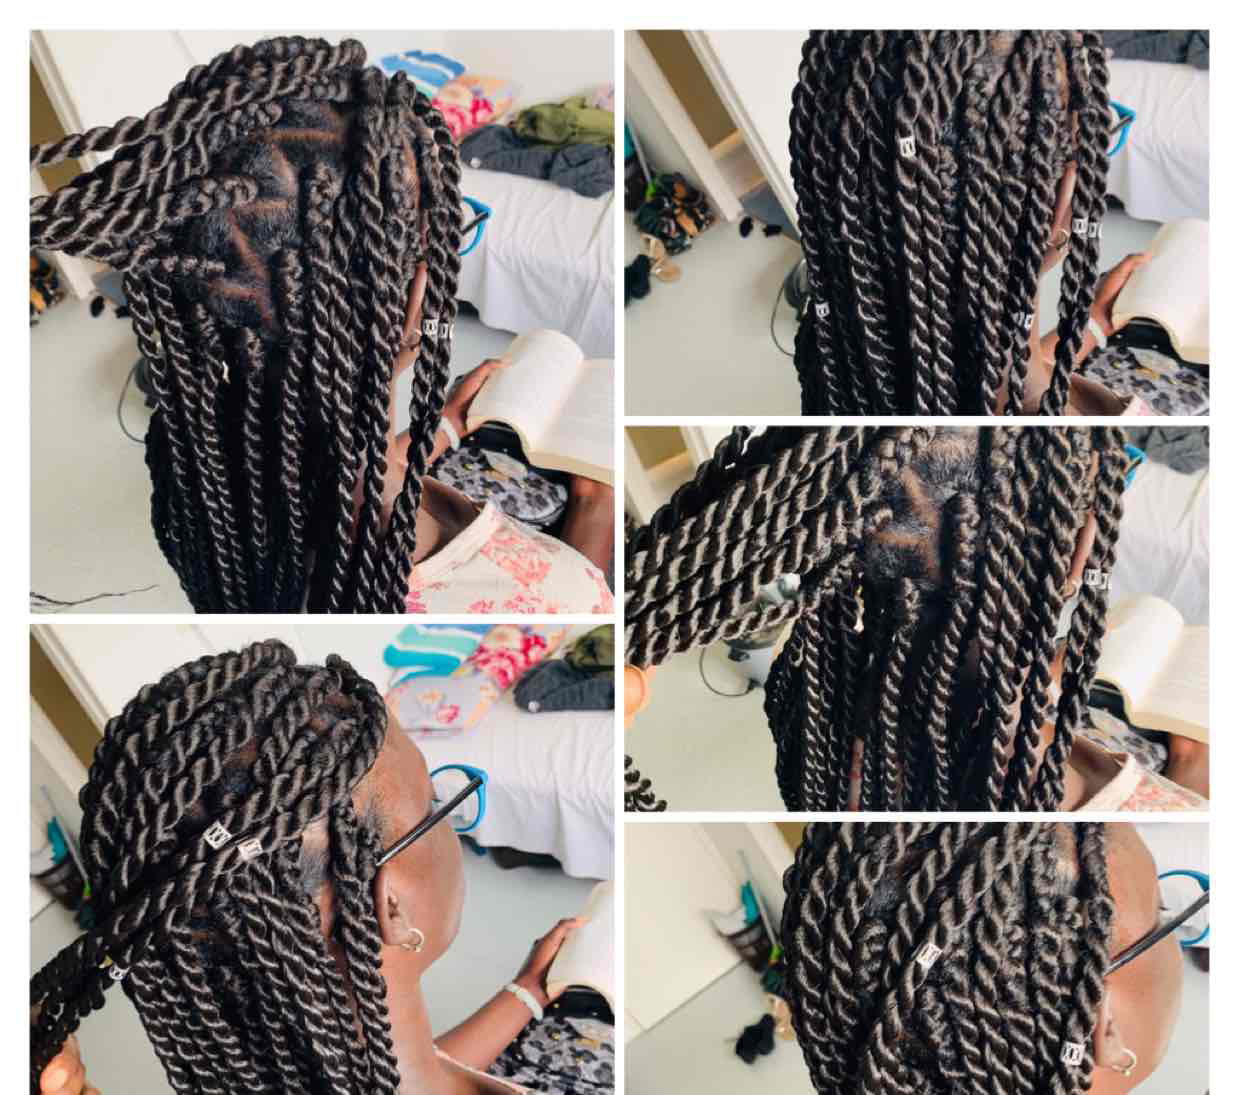 salon de coiffure afro tresse tresses box braids crochet braids vanilles tissages paris 75 77 78 91 92 93 94 95 ZQVMMFZL